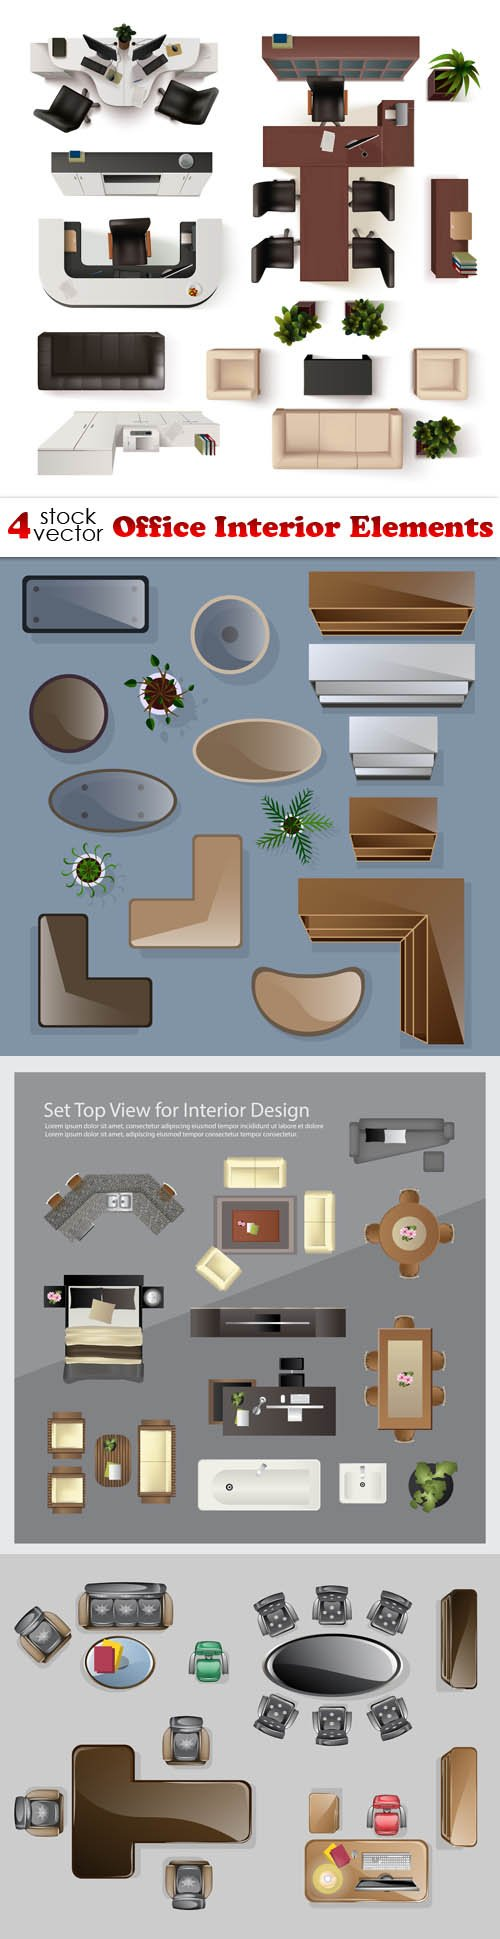 Vectors - Office Interior Elements